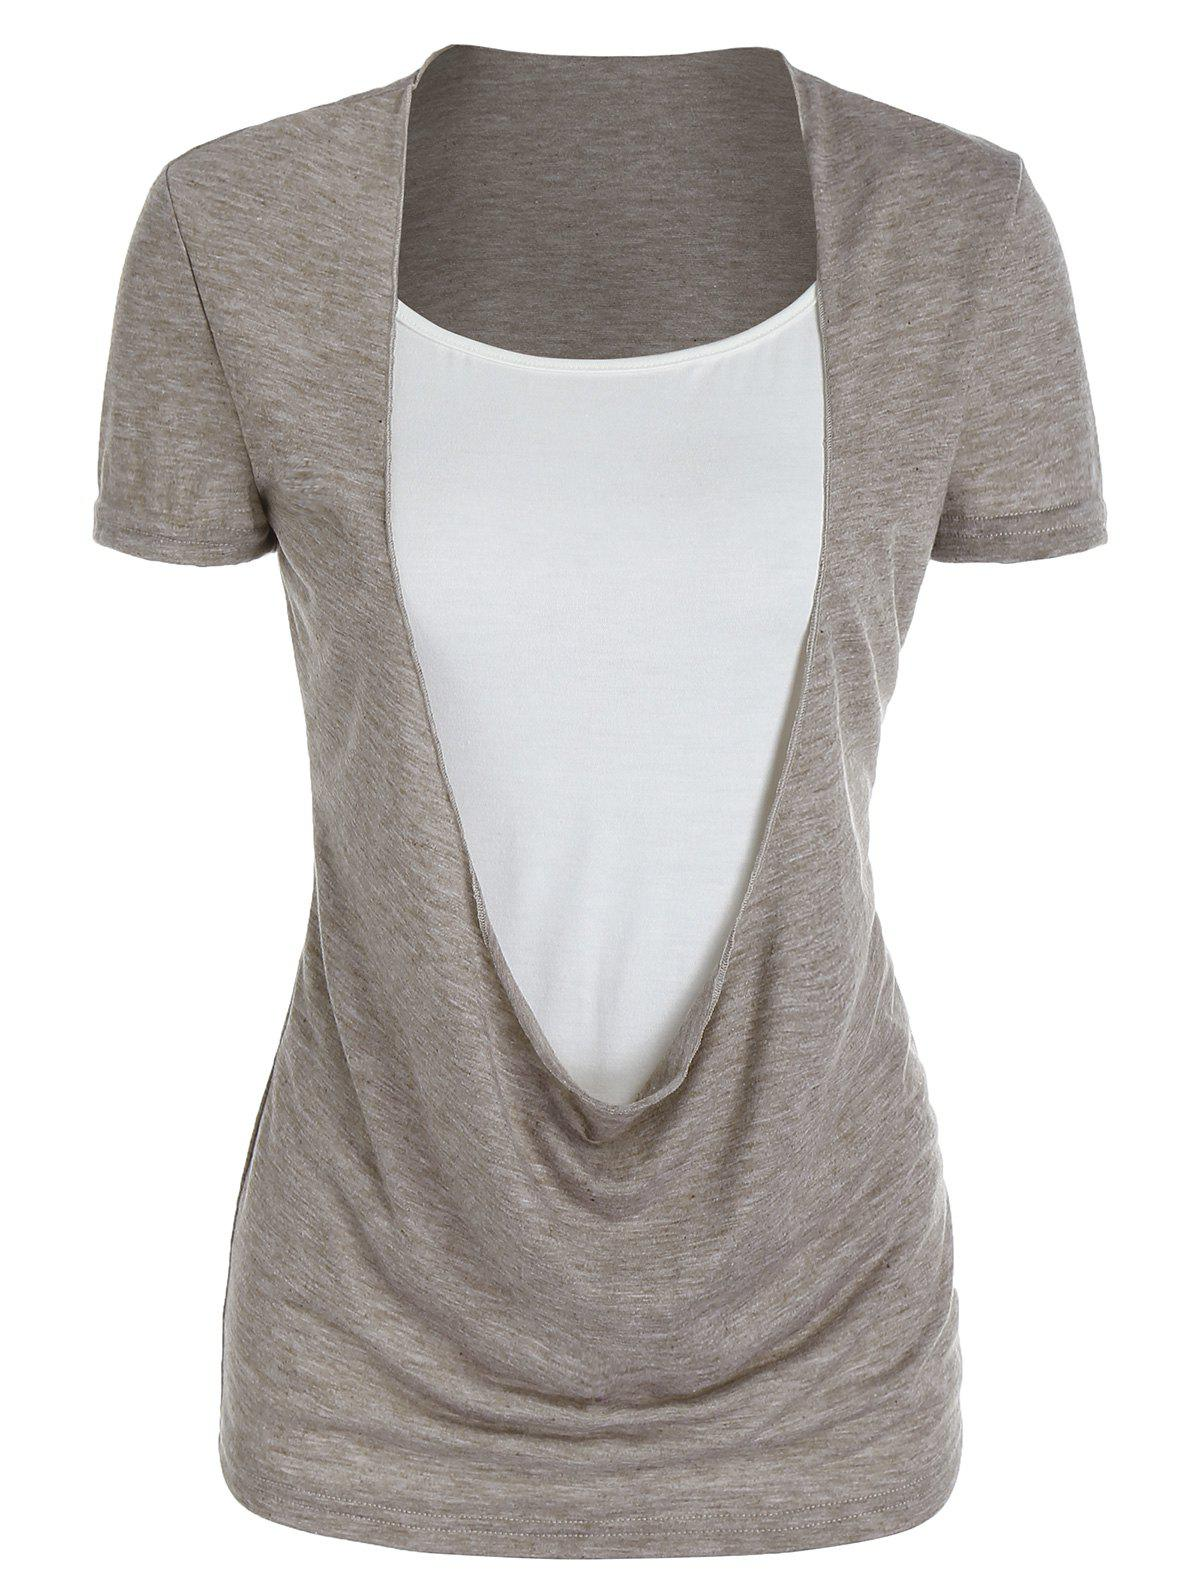 Heathered Draped Faux Twinset T-shirt - COFFEE 3XL